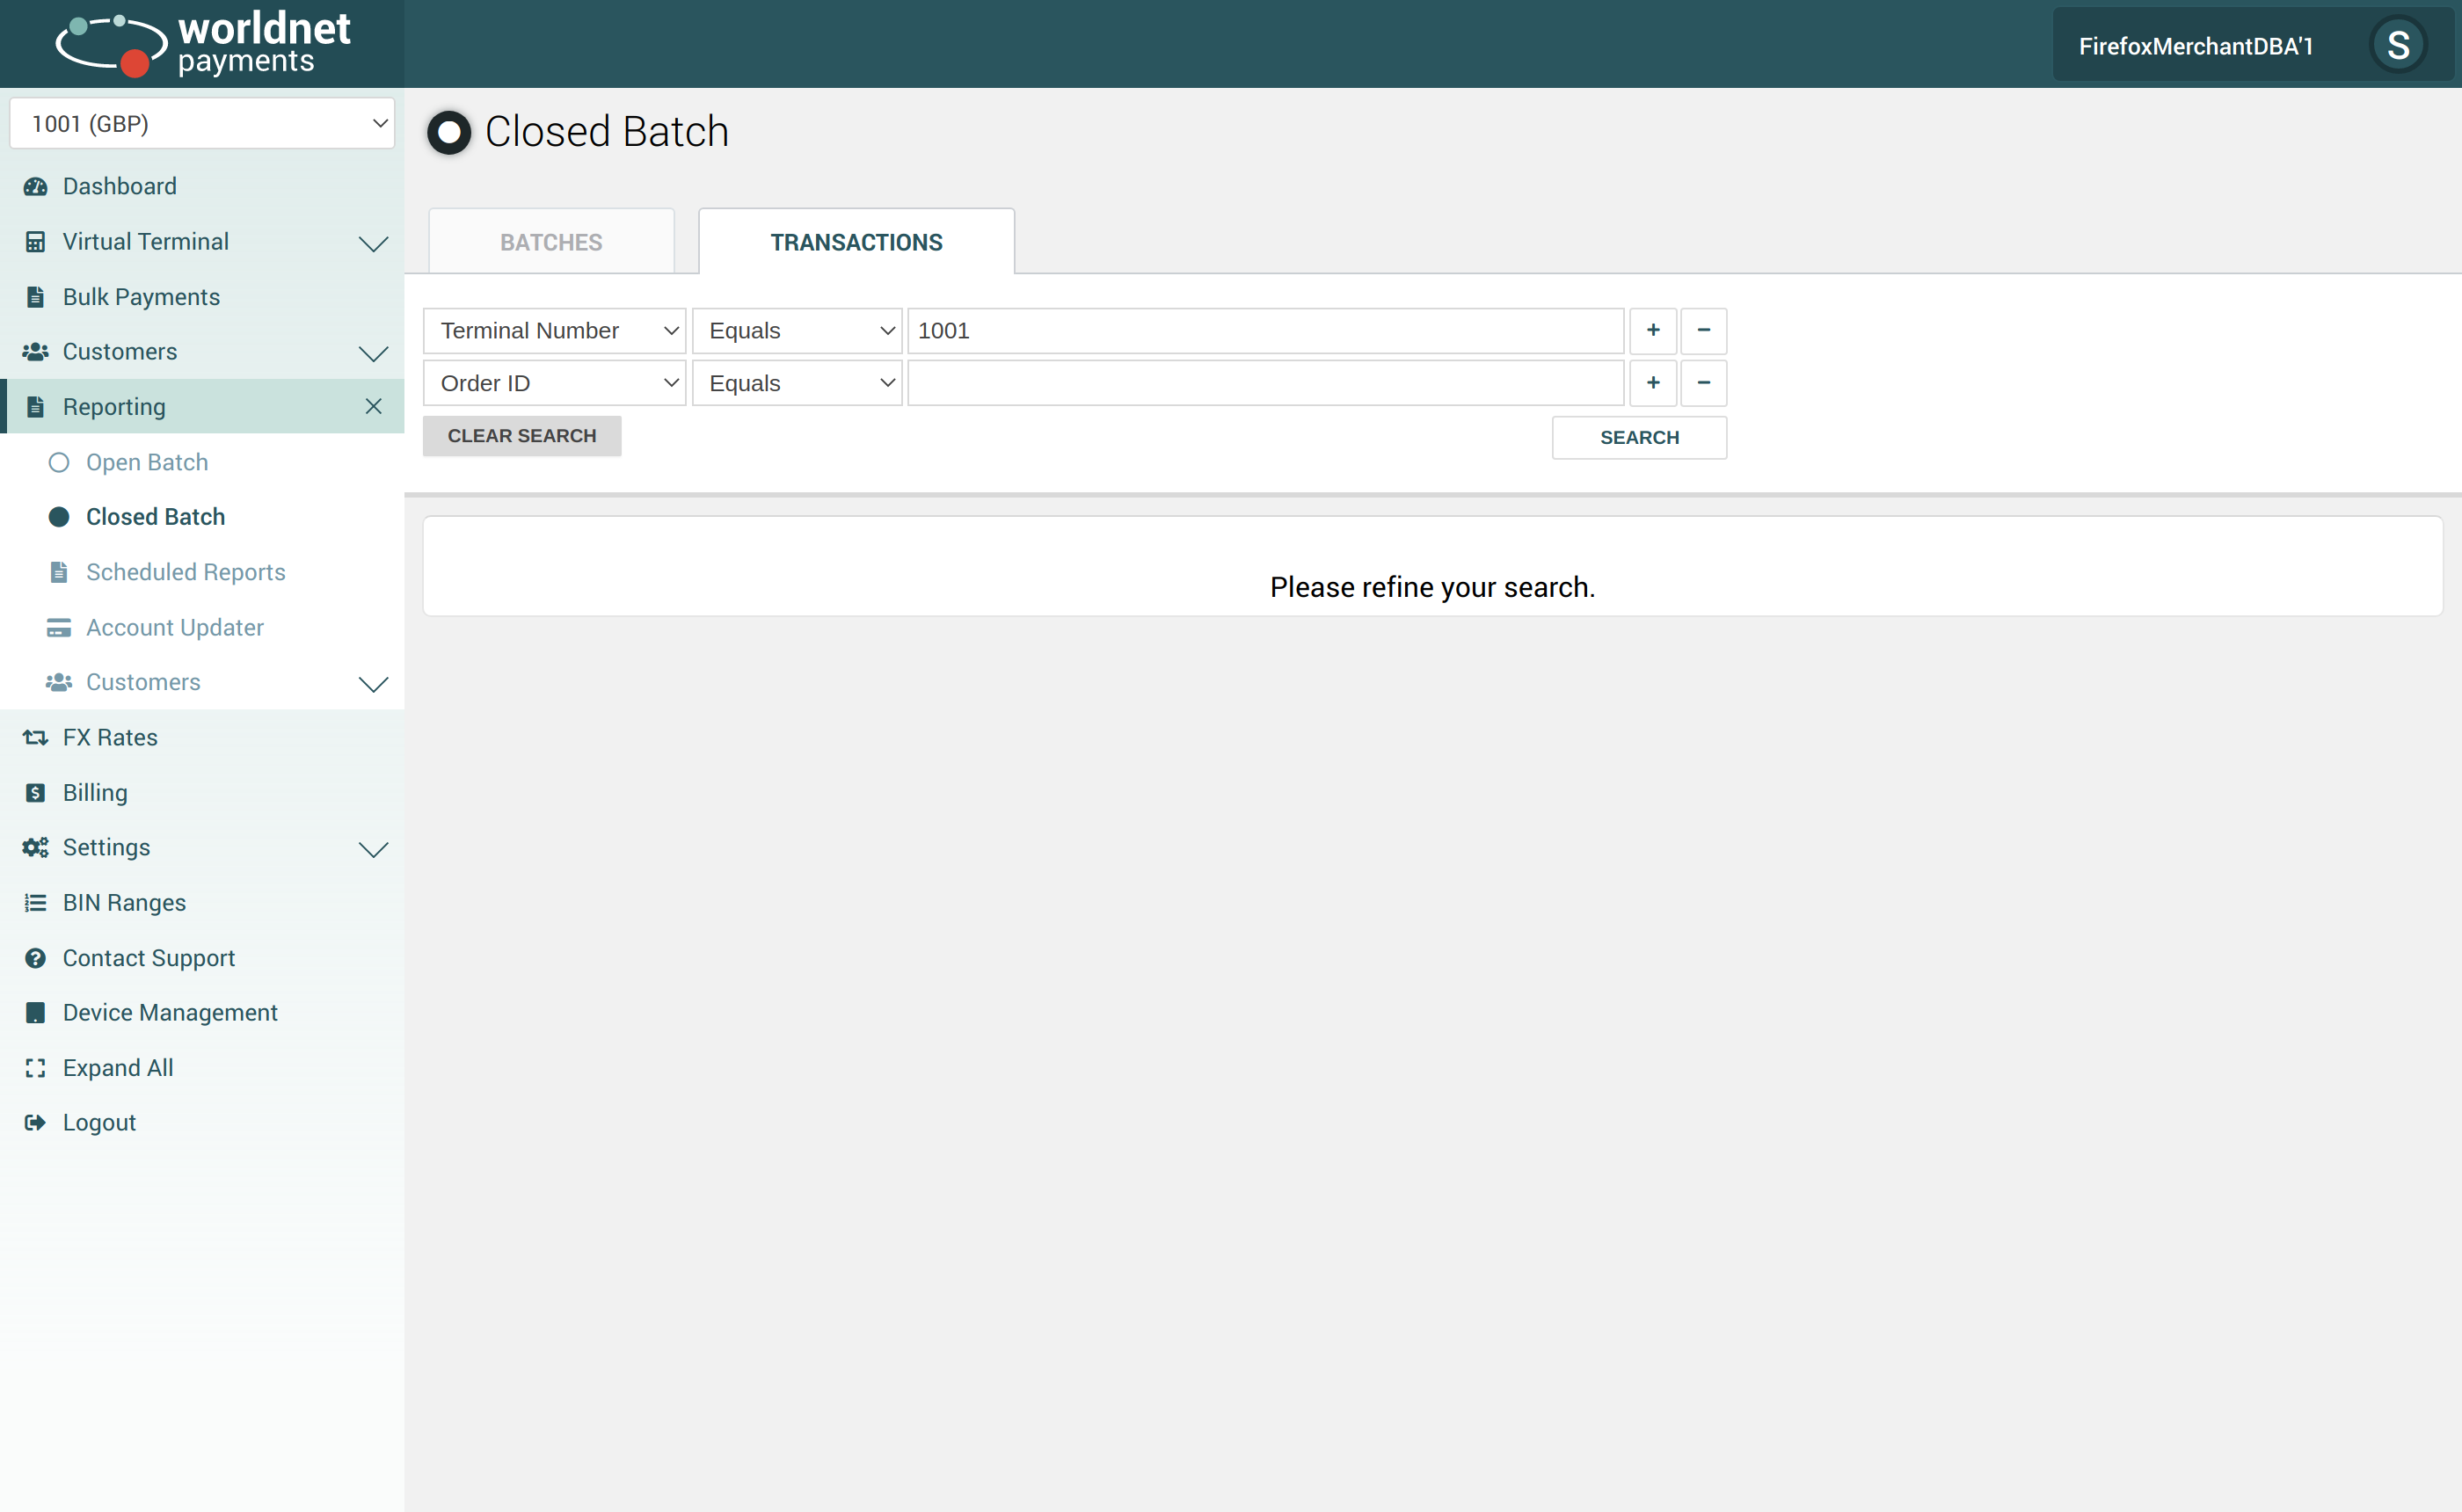 partner:screencapture-vagrant-wntps-merchant-selfcare-t-duhdzjhgyy-closed-batch-transactions-2021-03-02-10_49_59.png